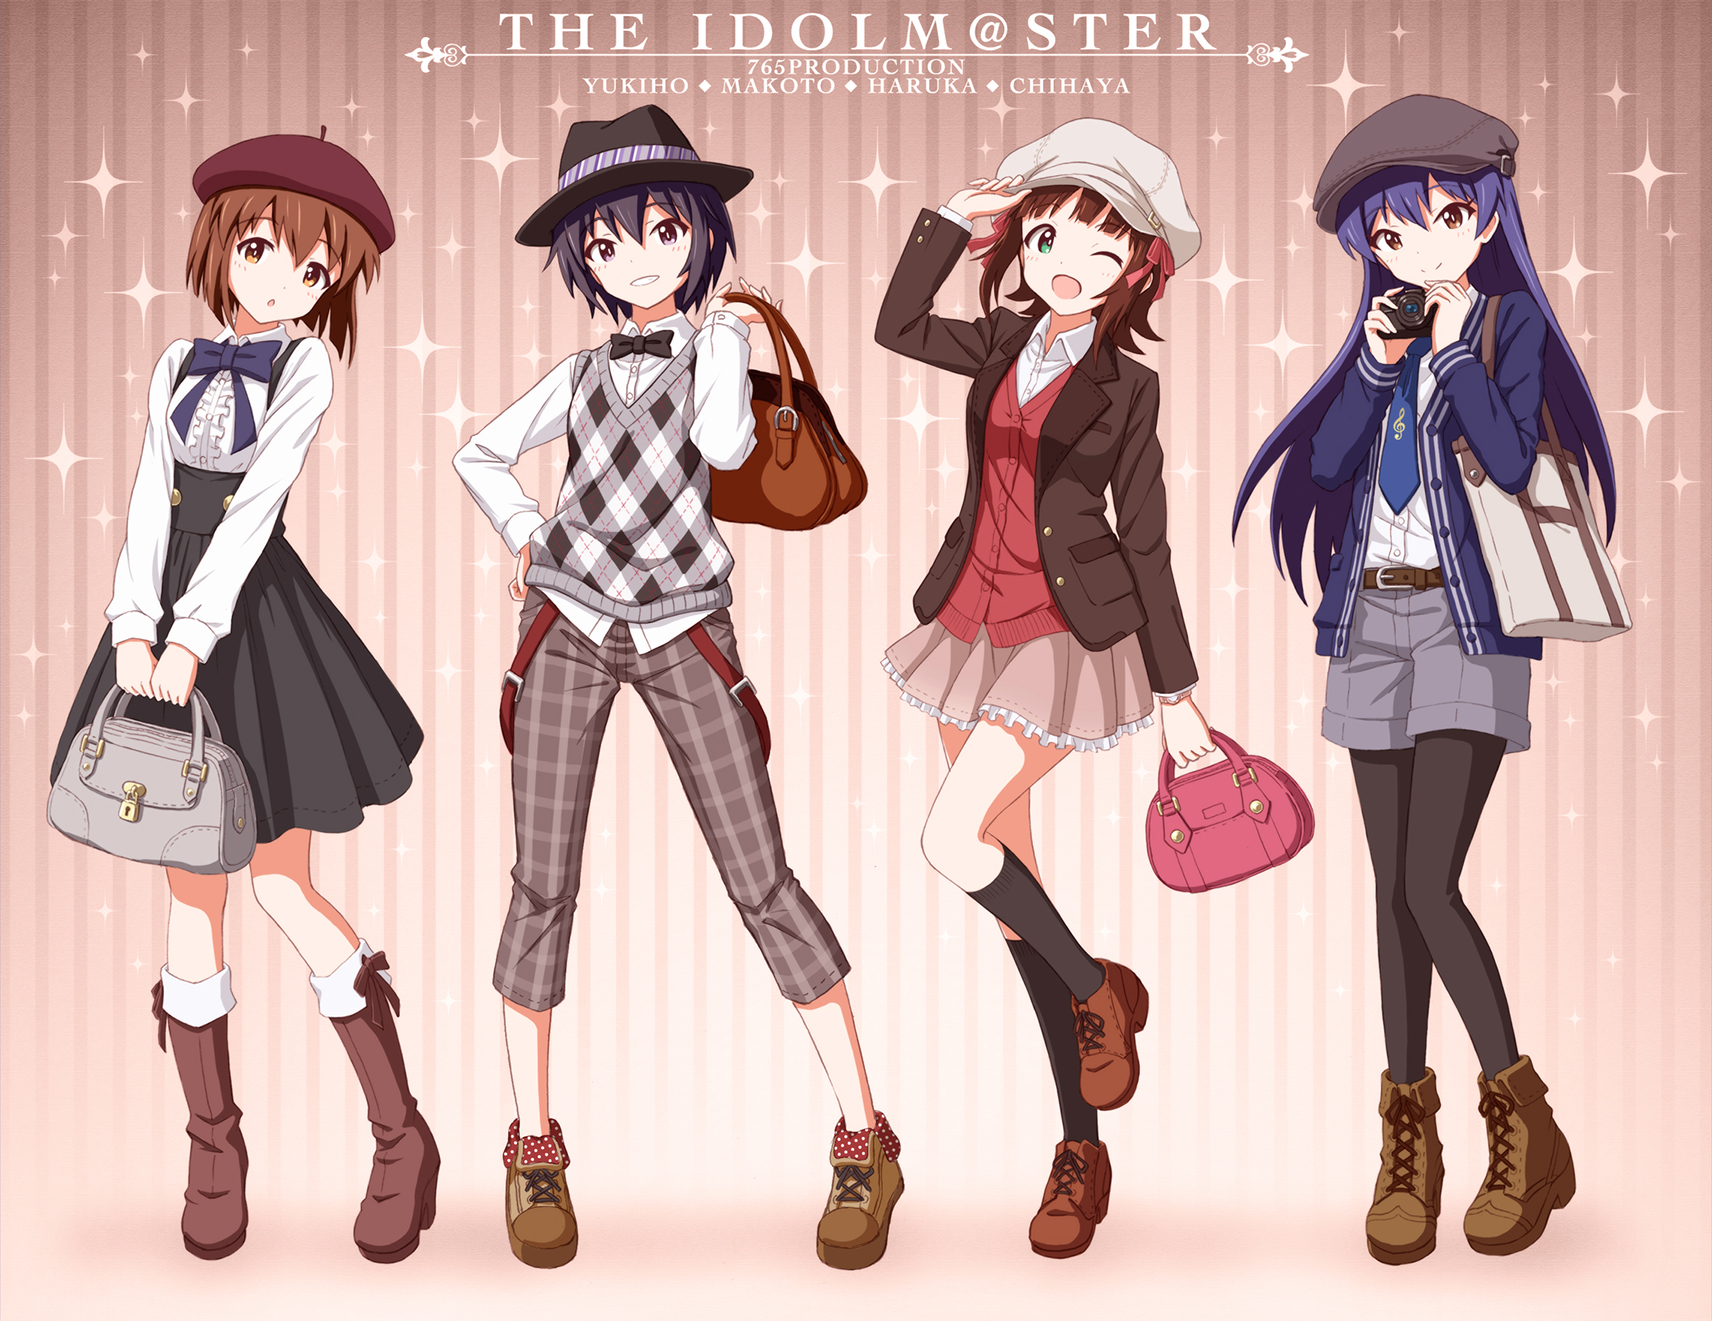 anime_wallpaper_Idol_Master_4762497-46685116_p0.jpg